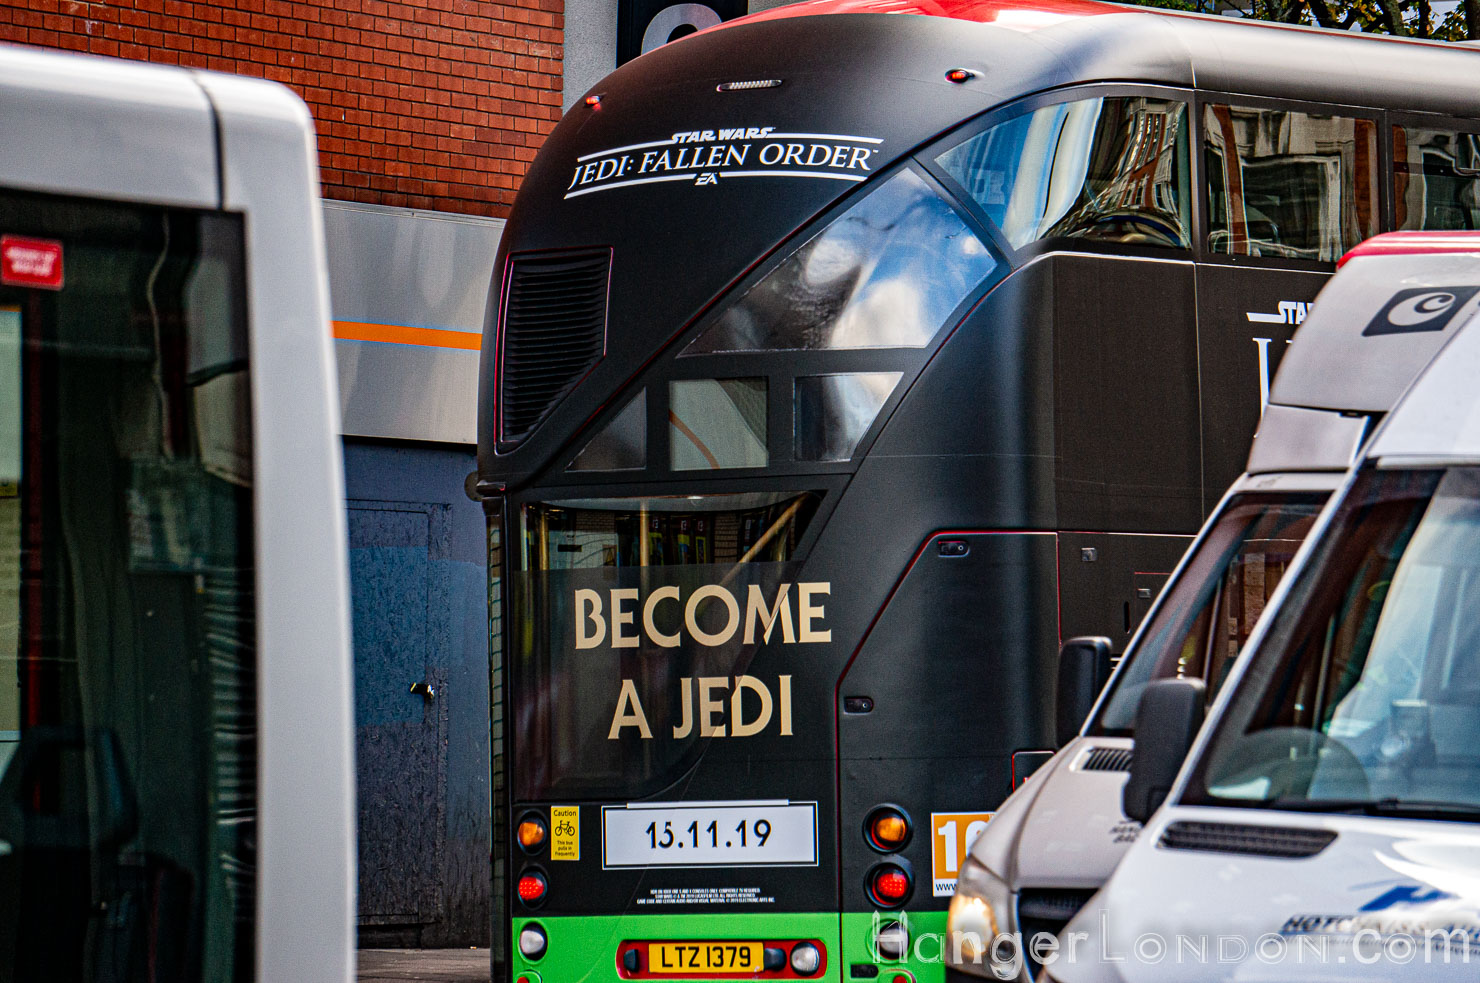 Become a Jedi on the Bus